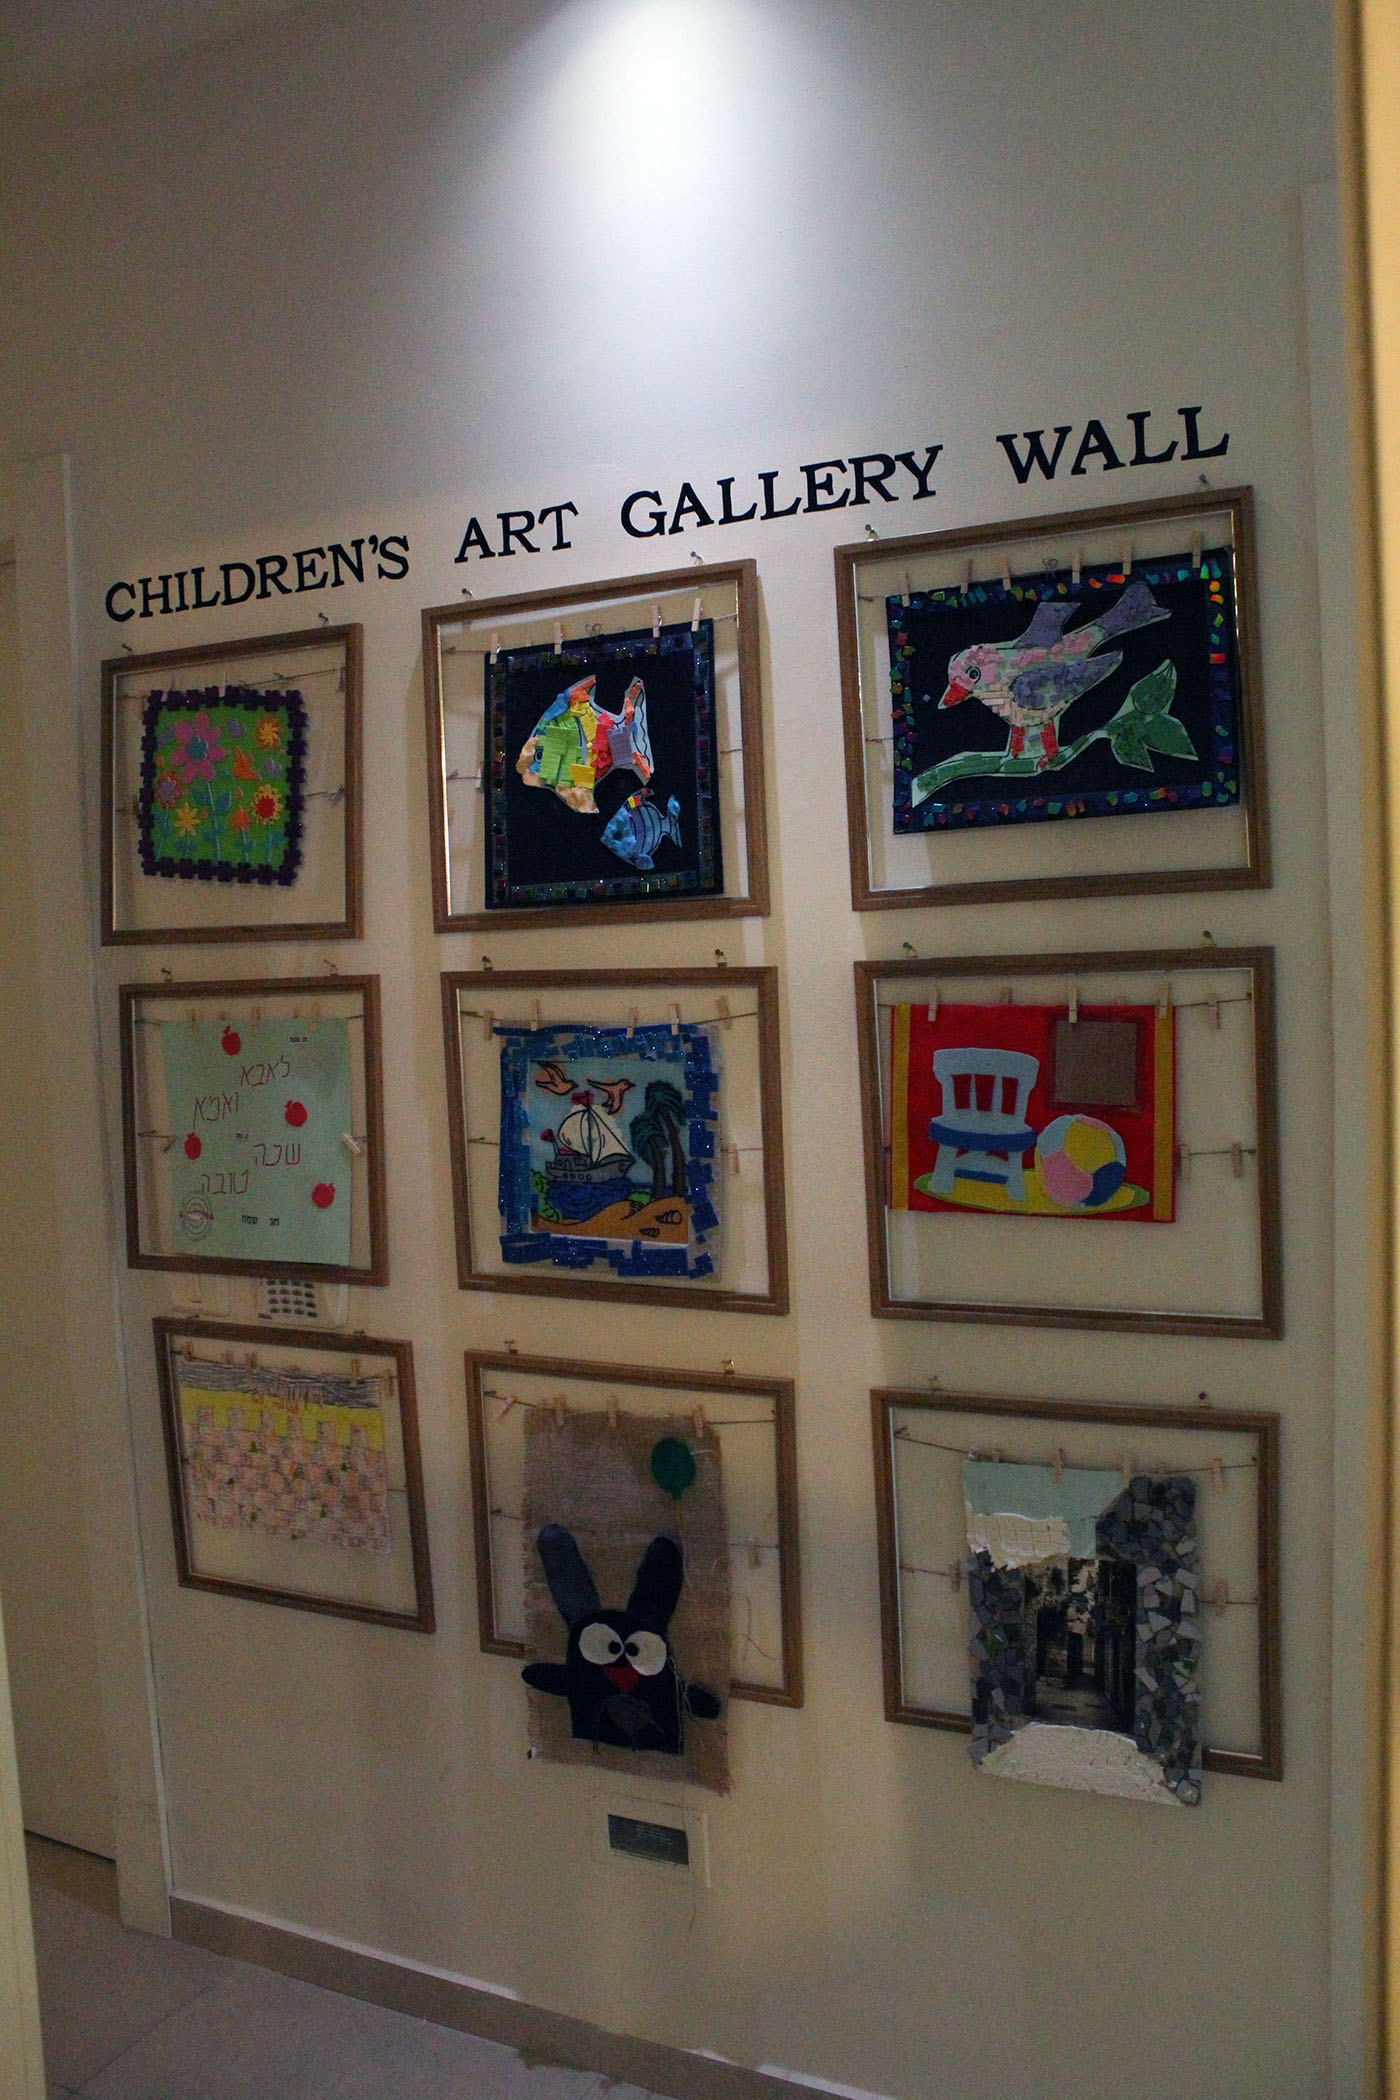 IMG 9775 - Children's Art Gallery